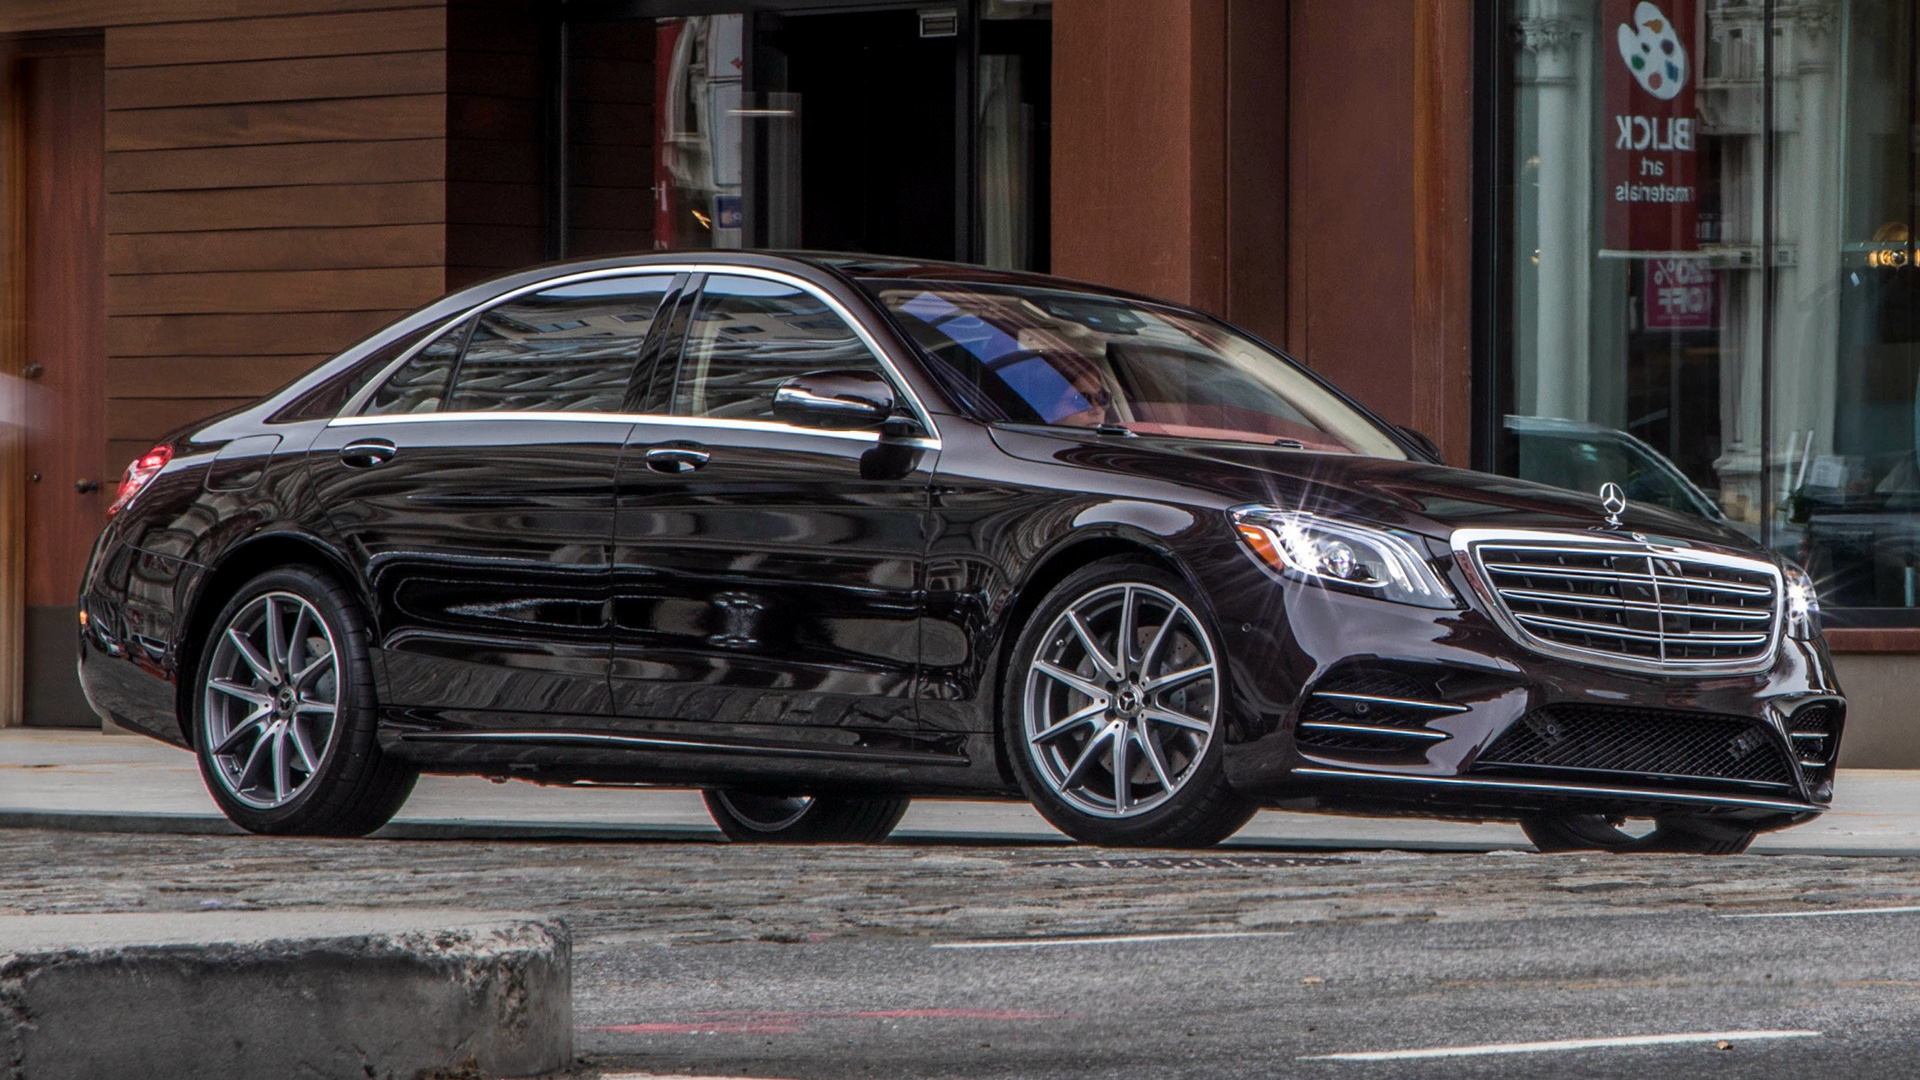 Who Makes Cadillac >> Mercedes-Benz S-Class AMG Styling [Long] (2018) US Wallpapers and HD Images - Car Pixel